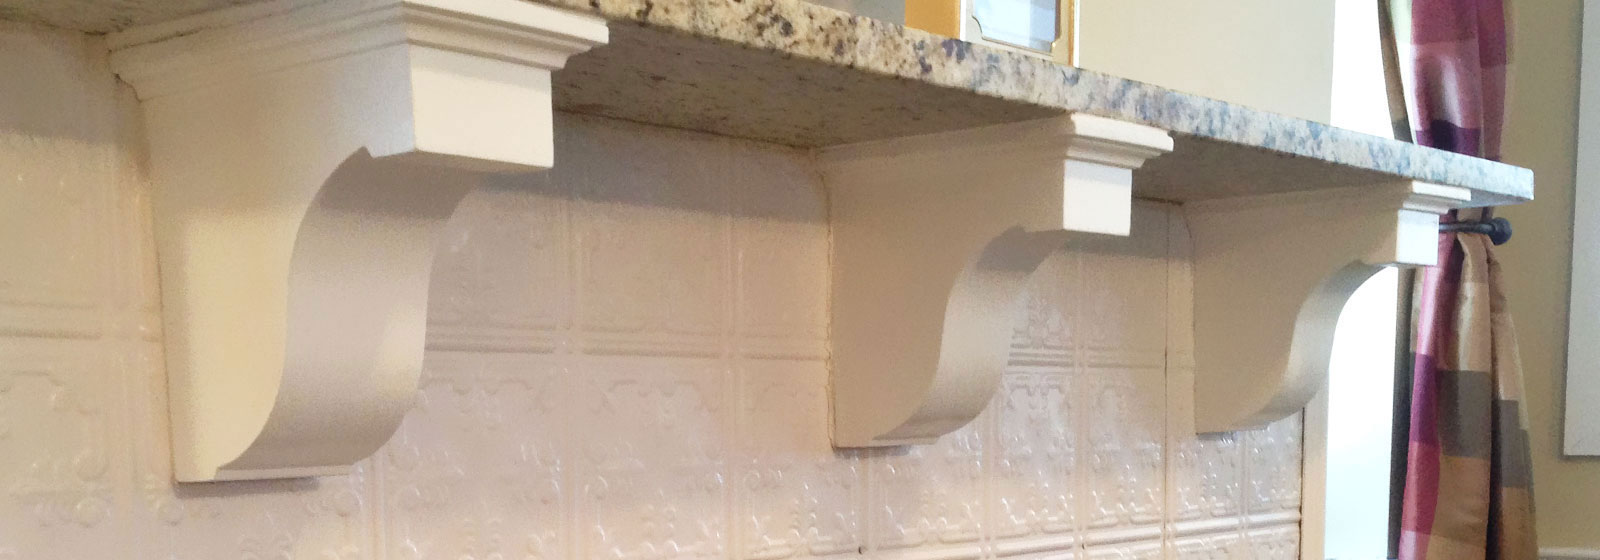 corbels decoration the bracket design to ideas interior price decor installation with and room beautify decorative wood kitchen also best living